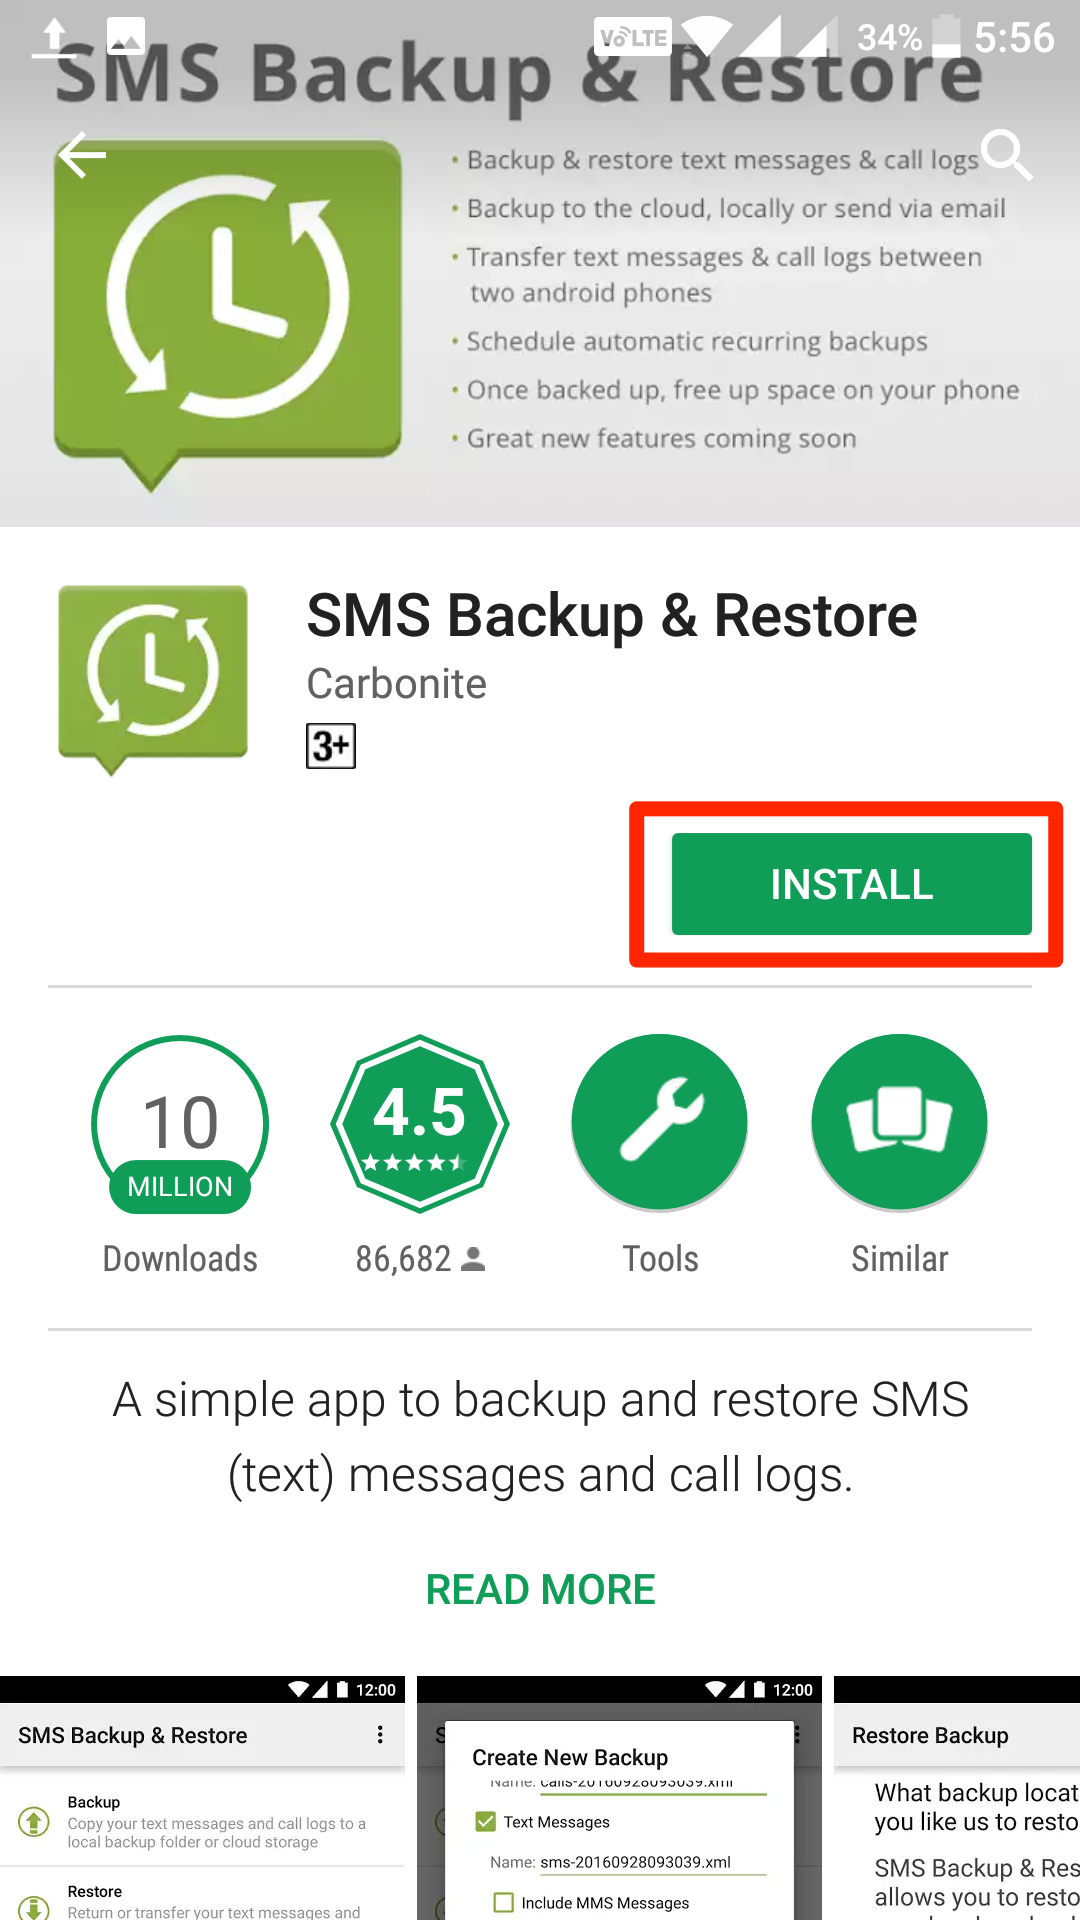 sms-backup-install